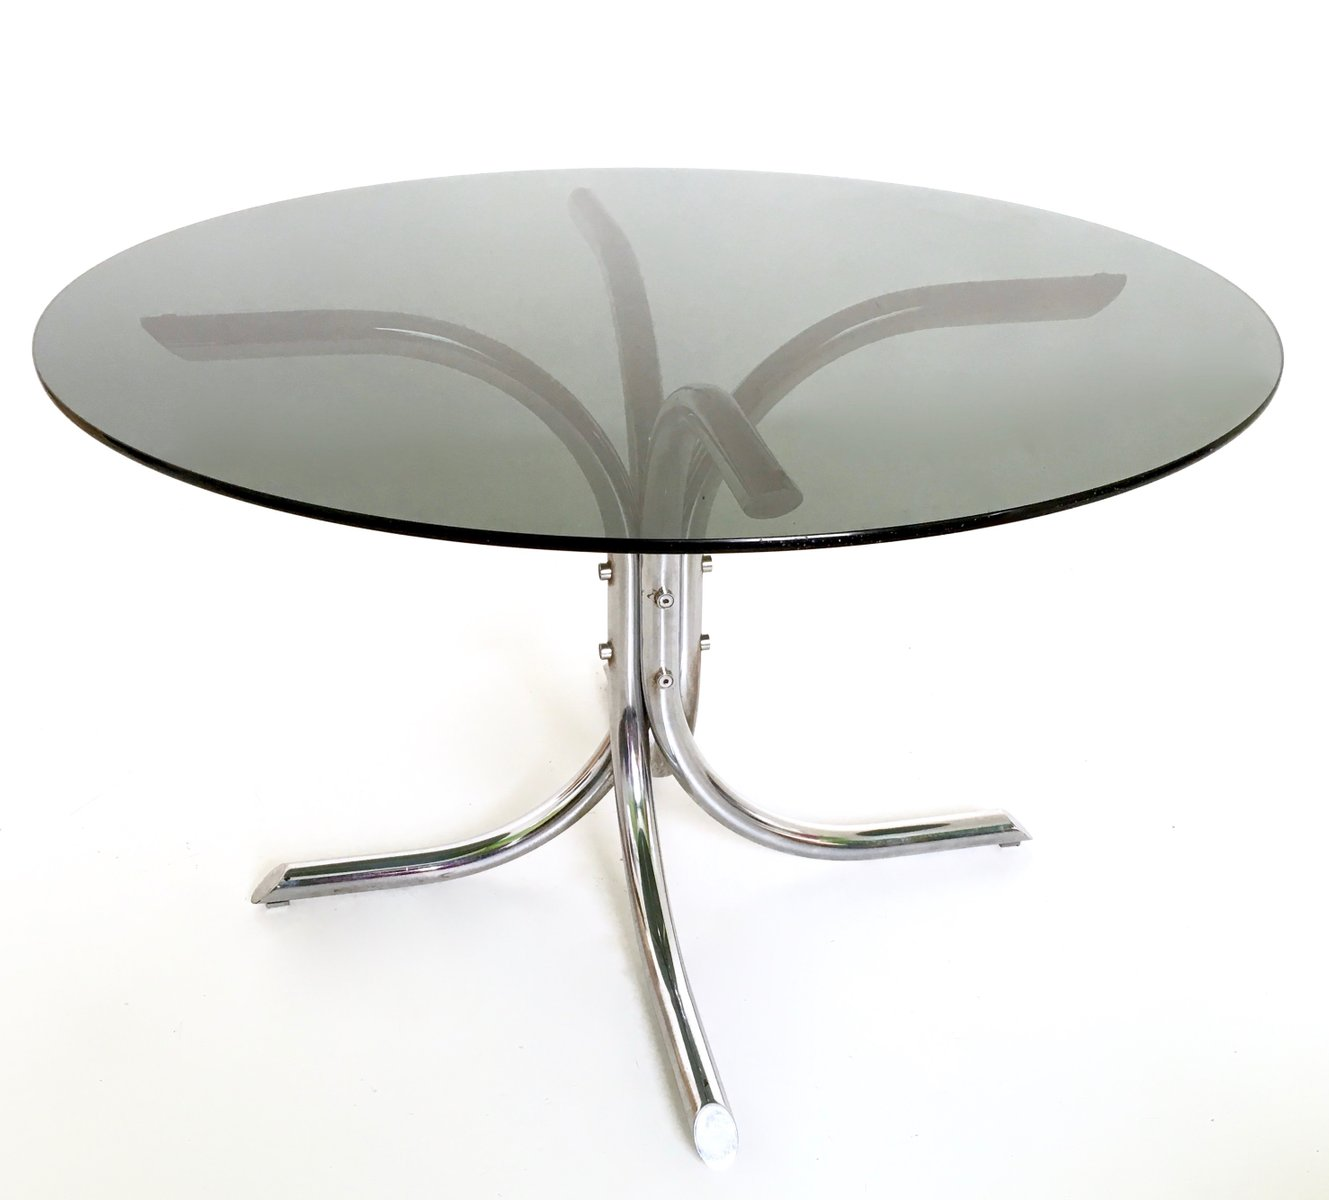 Italian Chromed Metal And Smoked Glass Dining Table, 1970s Part 37